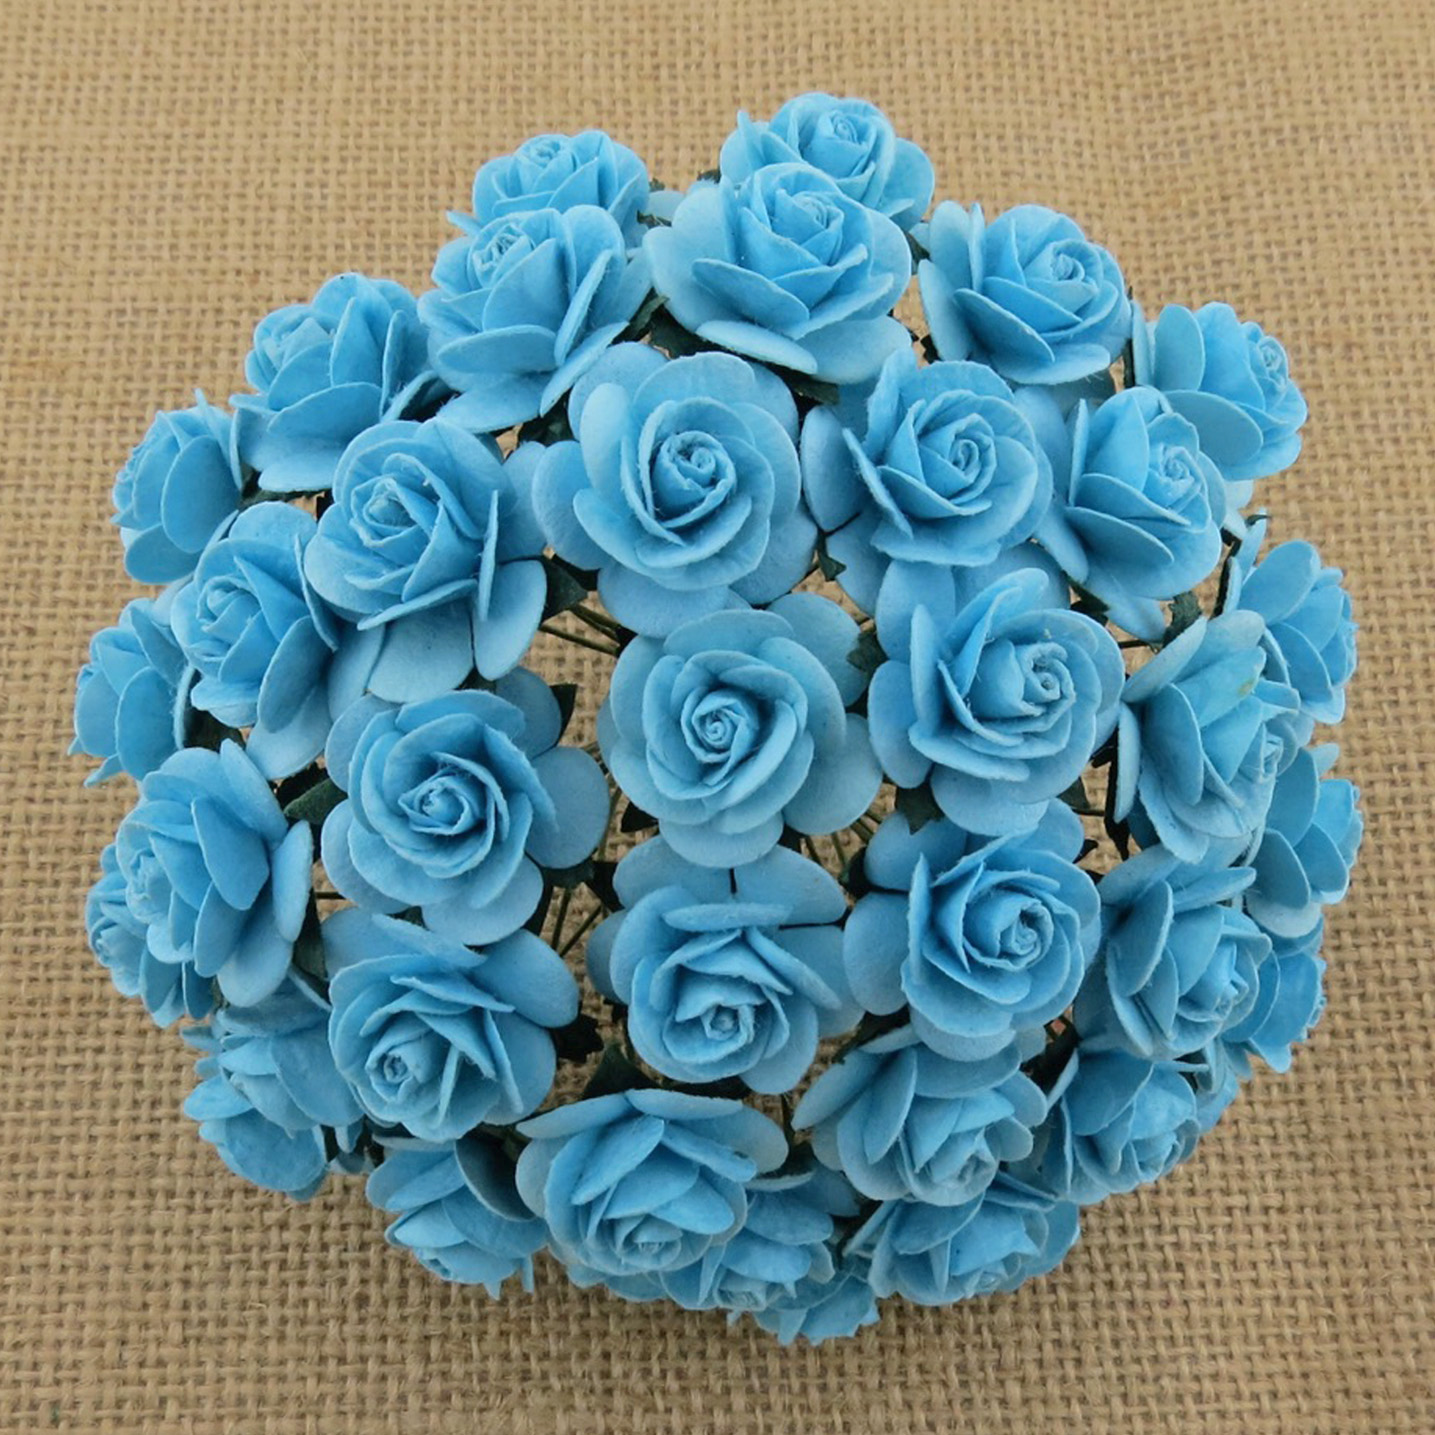 100 LIGHT TURQUOISE MULBERRY PAPER OPEN ROSES